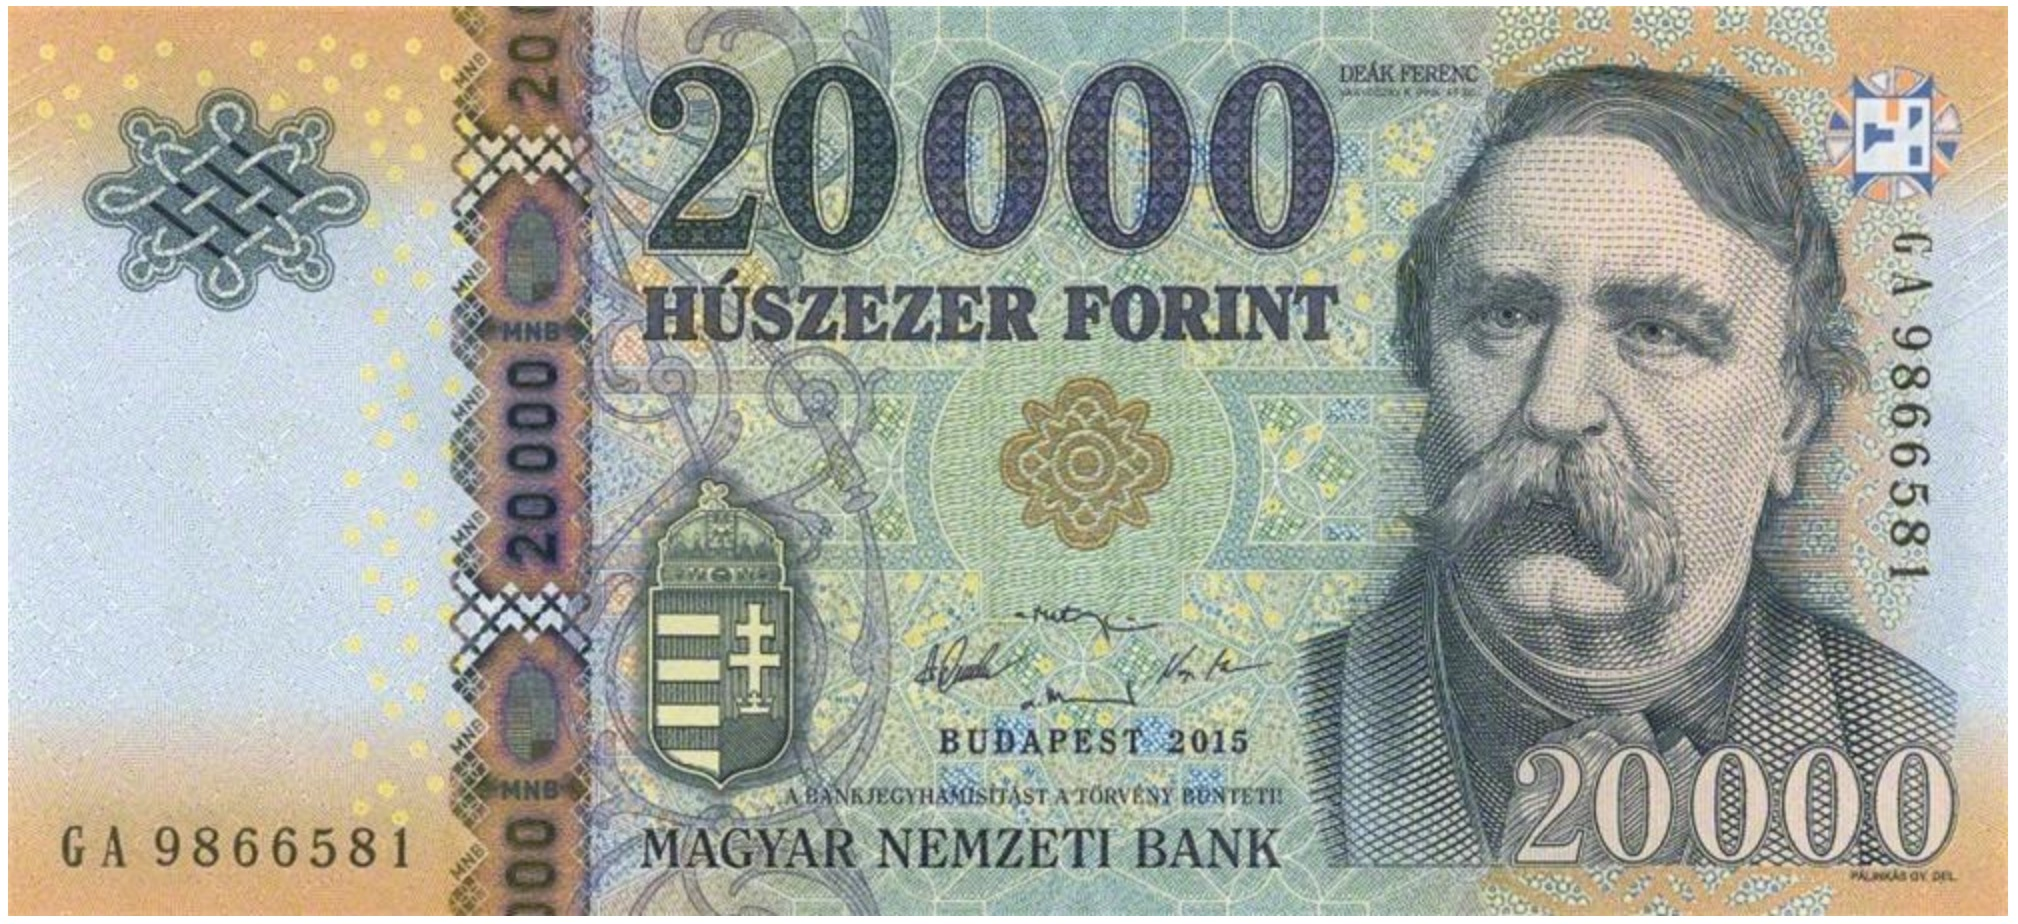 20000 Hungarian Forints banknote (Ferenc Deak 2015)